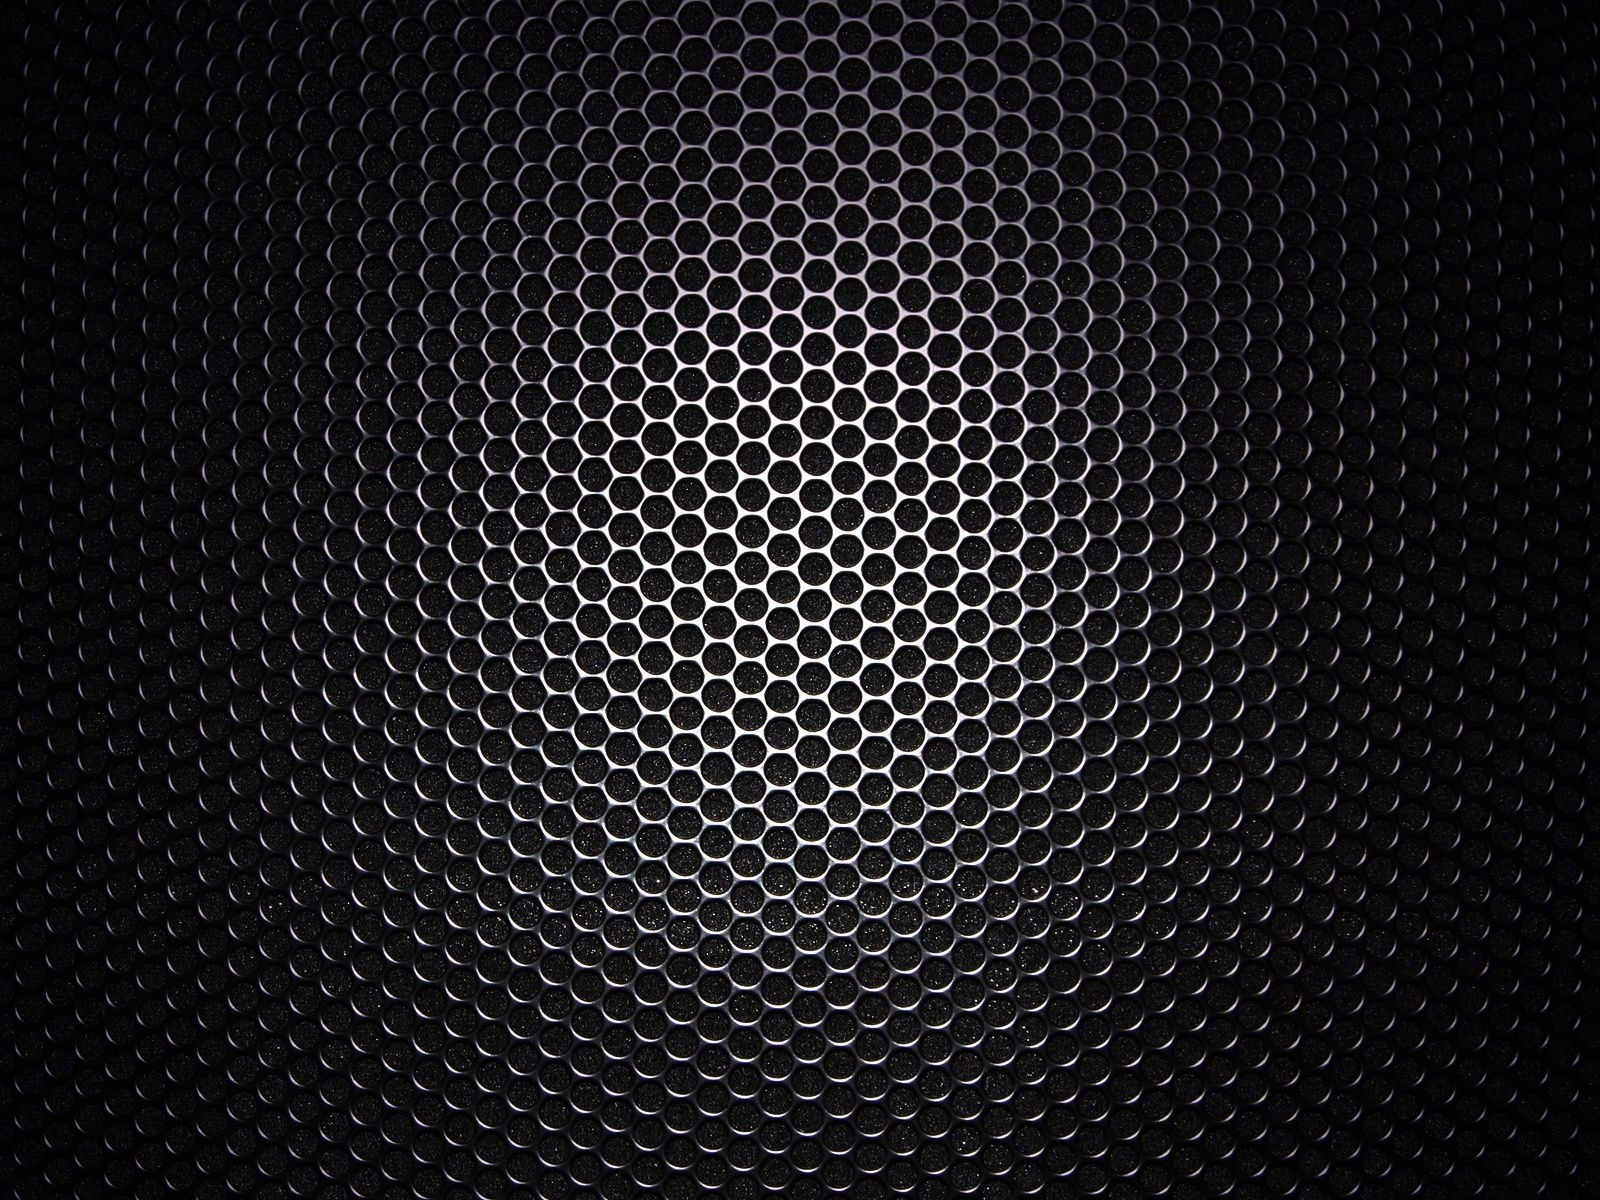 carbon fiber wallpaper hd |  desktop wallpaper download texture